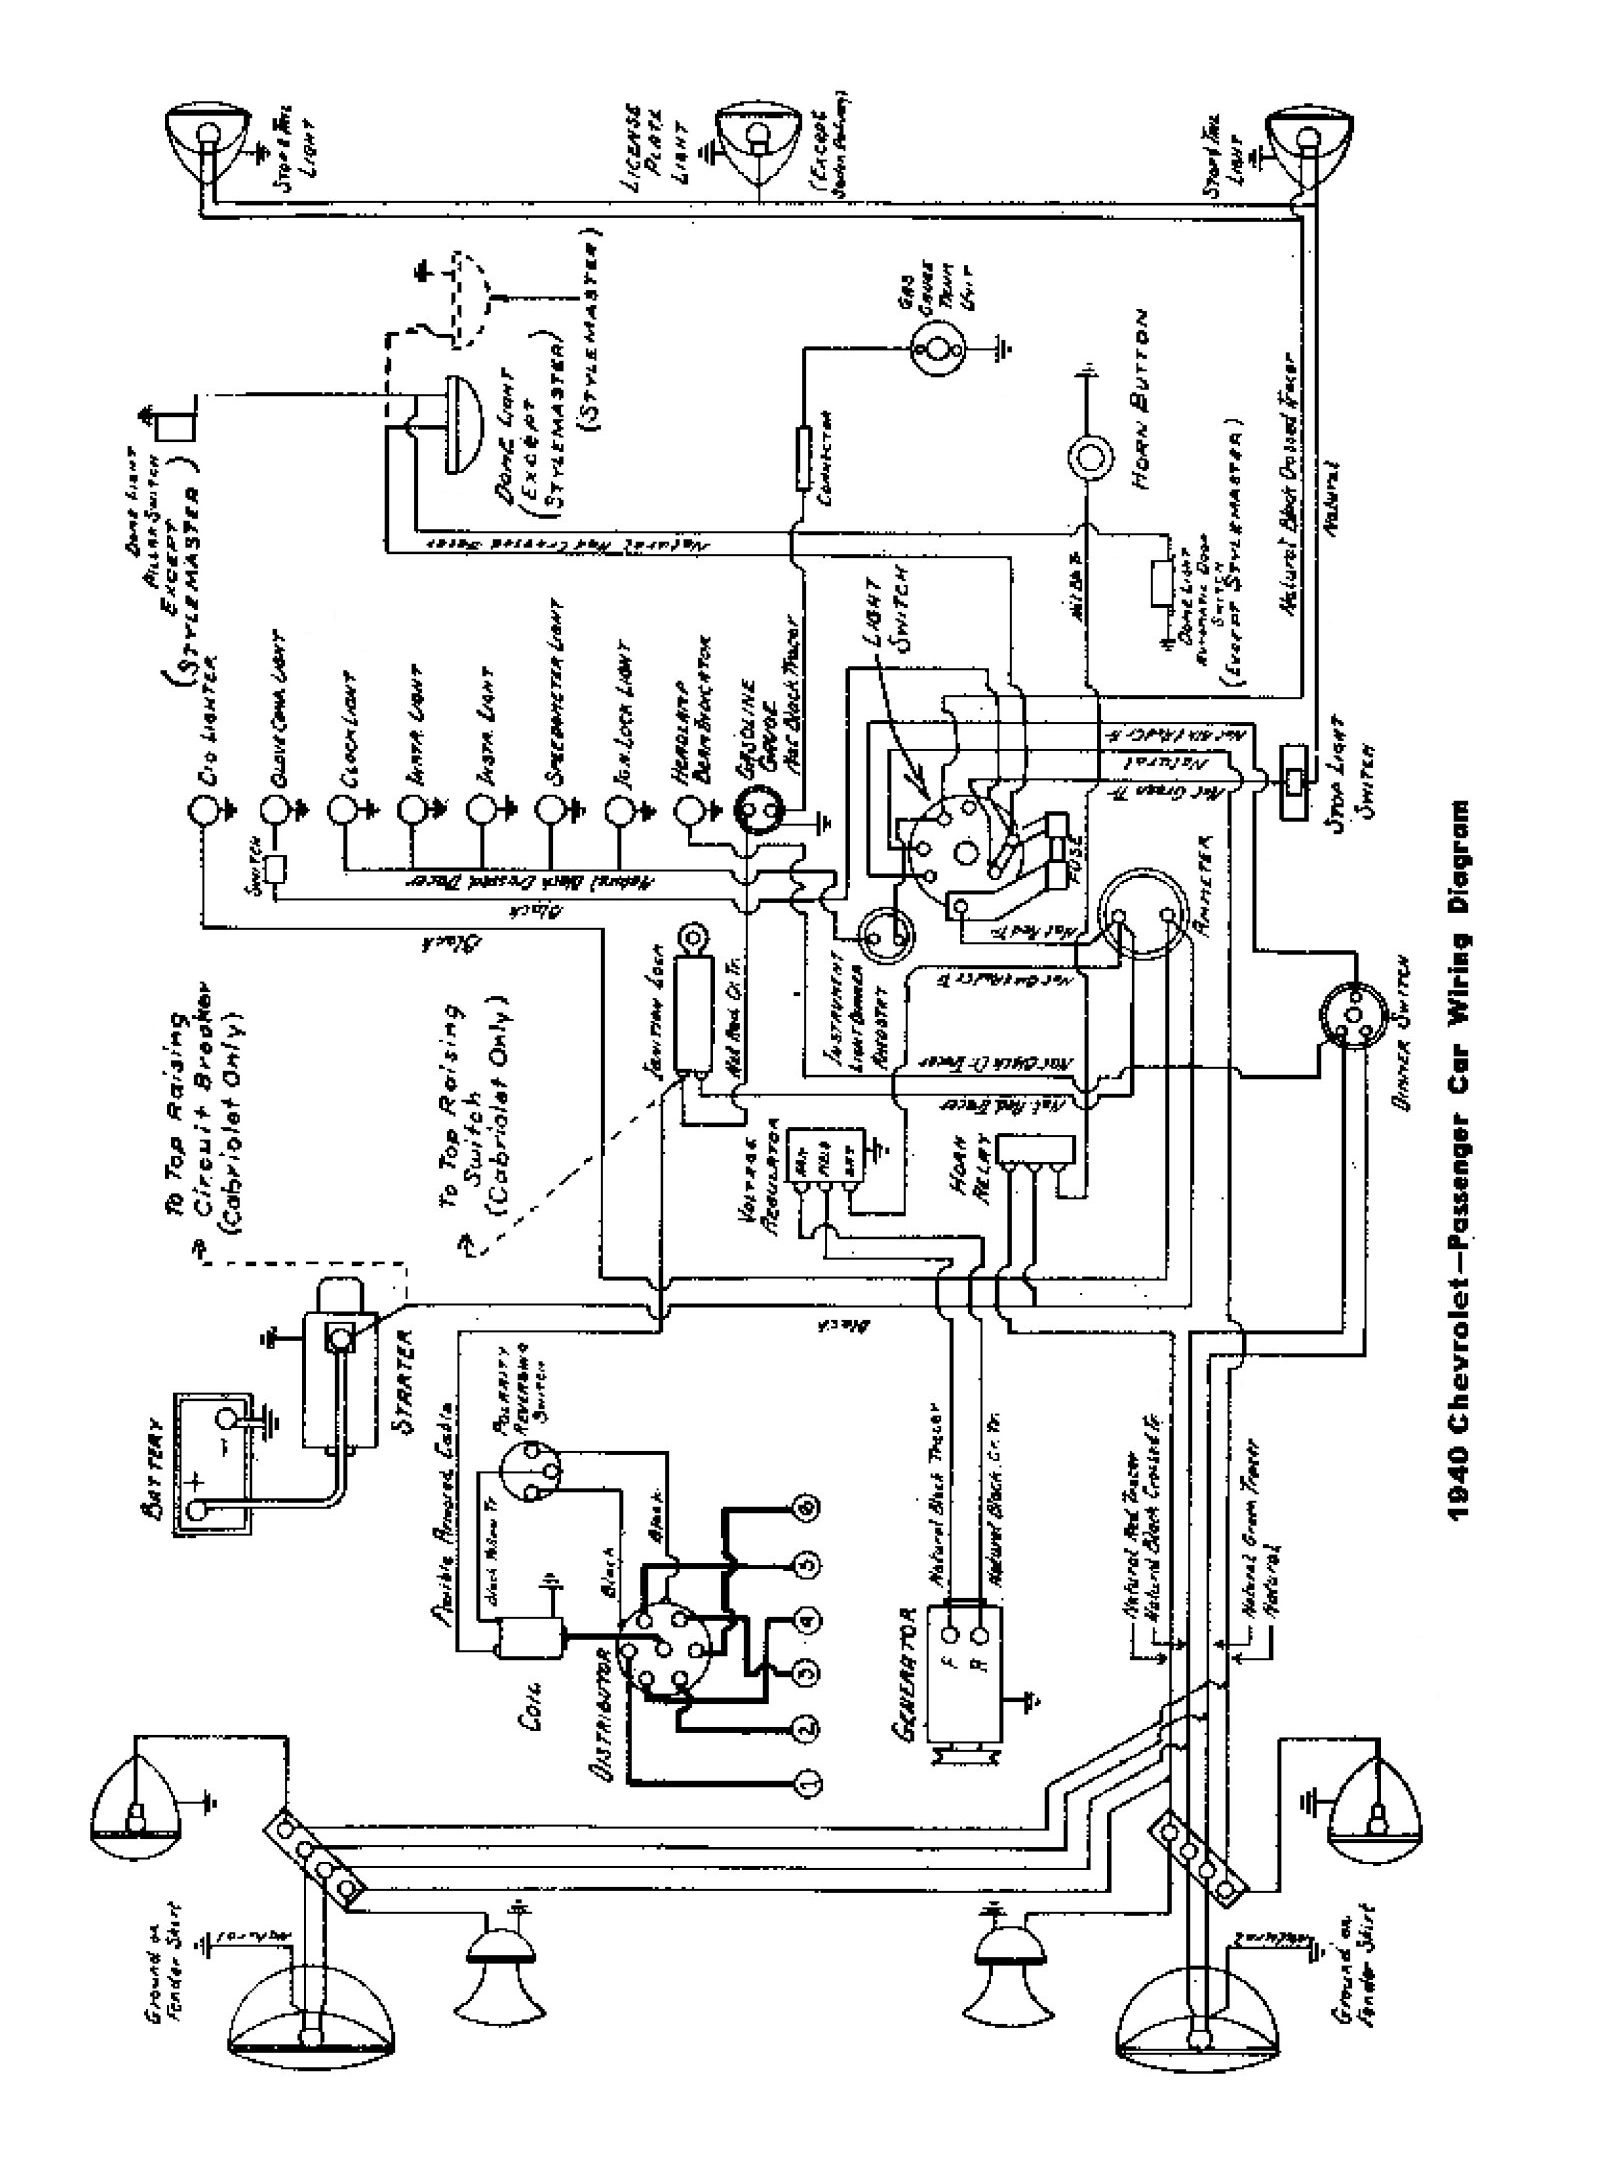 hight resolution of 1954 international trucks wiring diagram